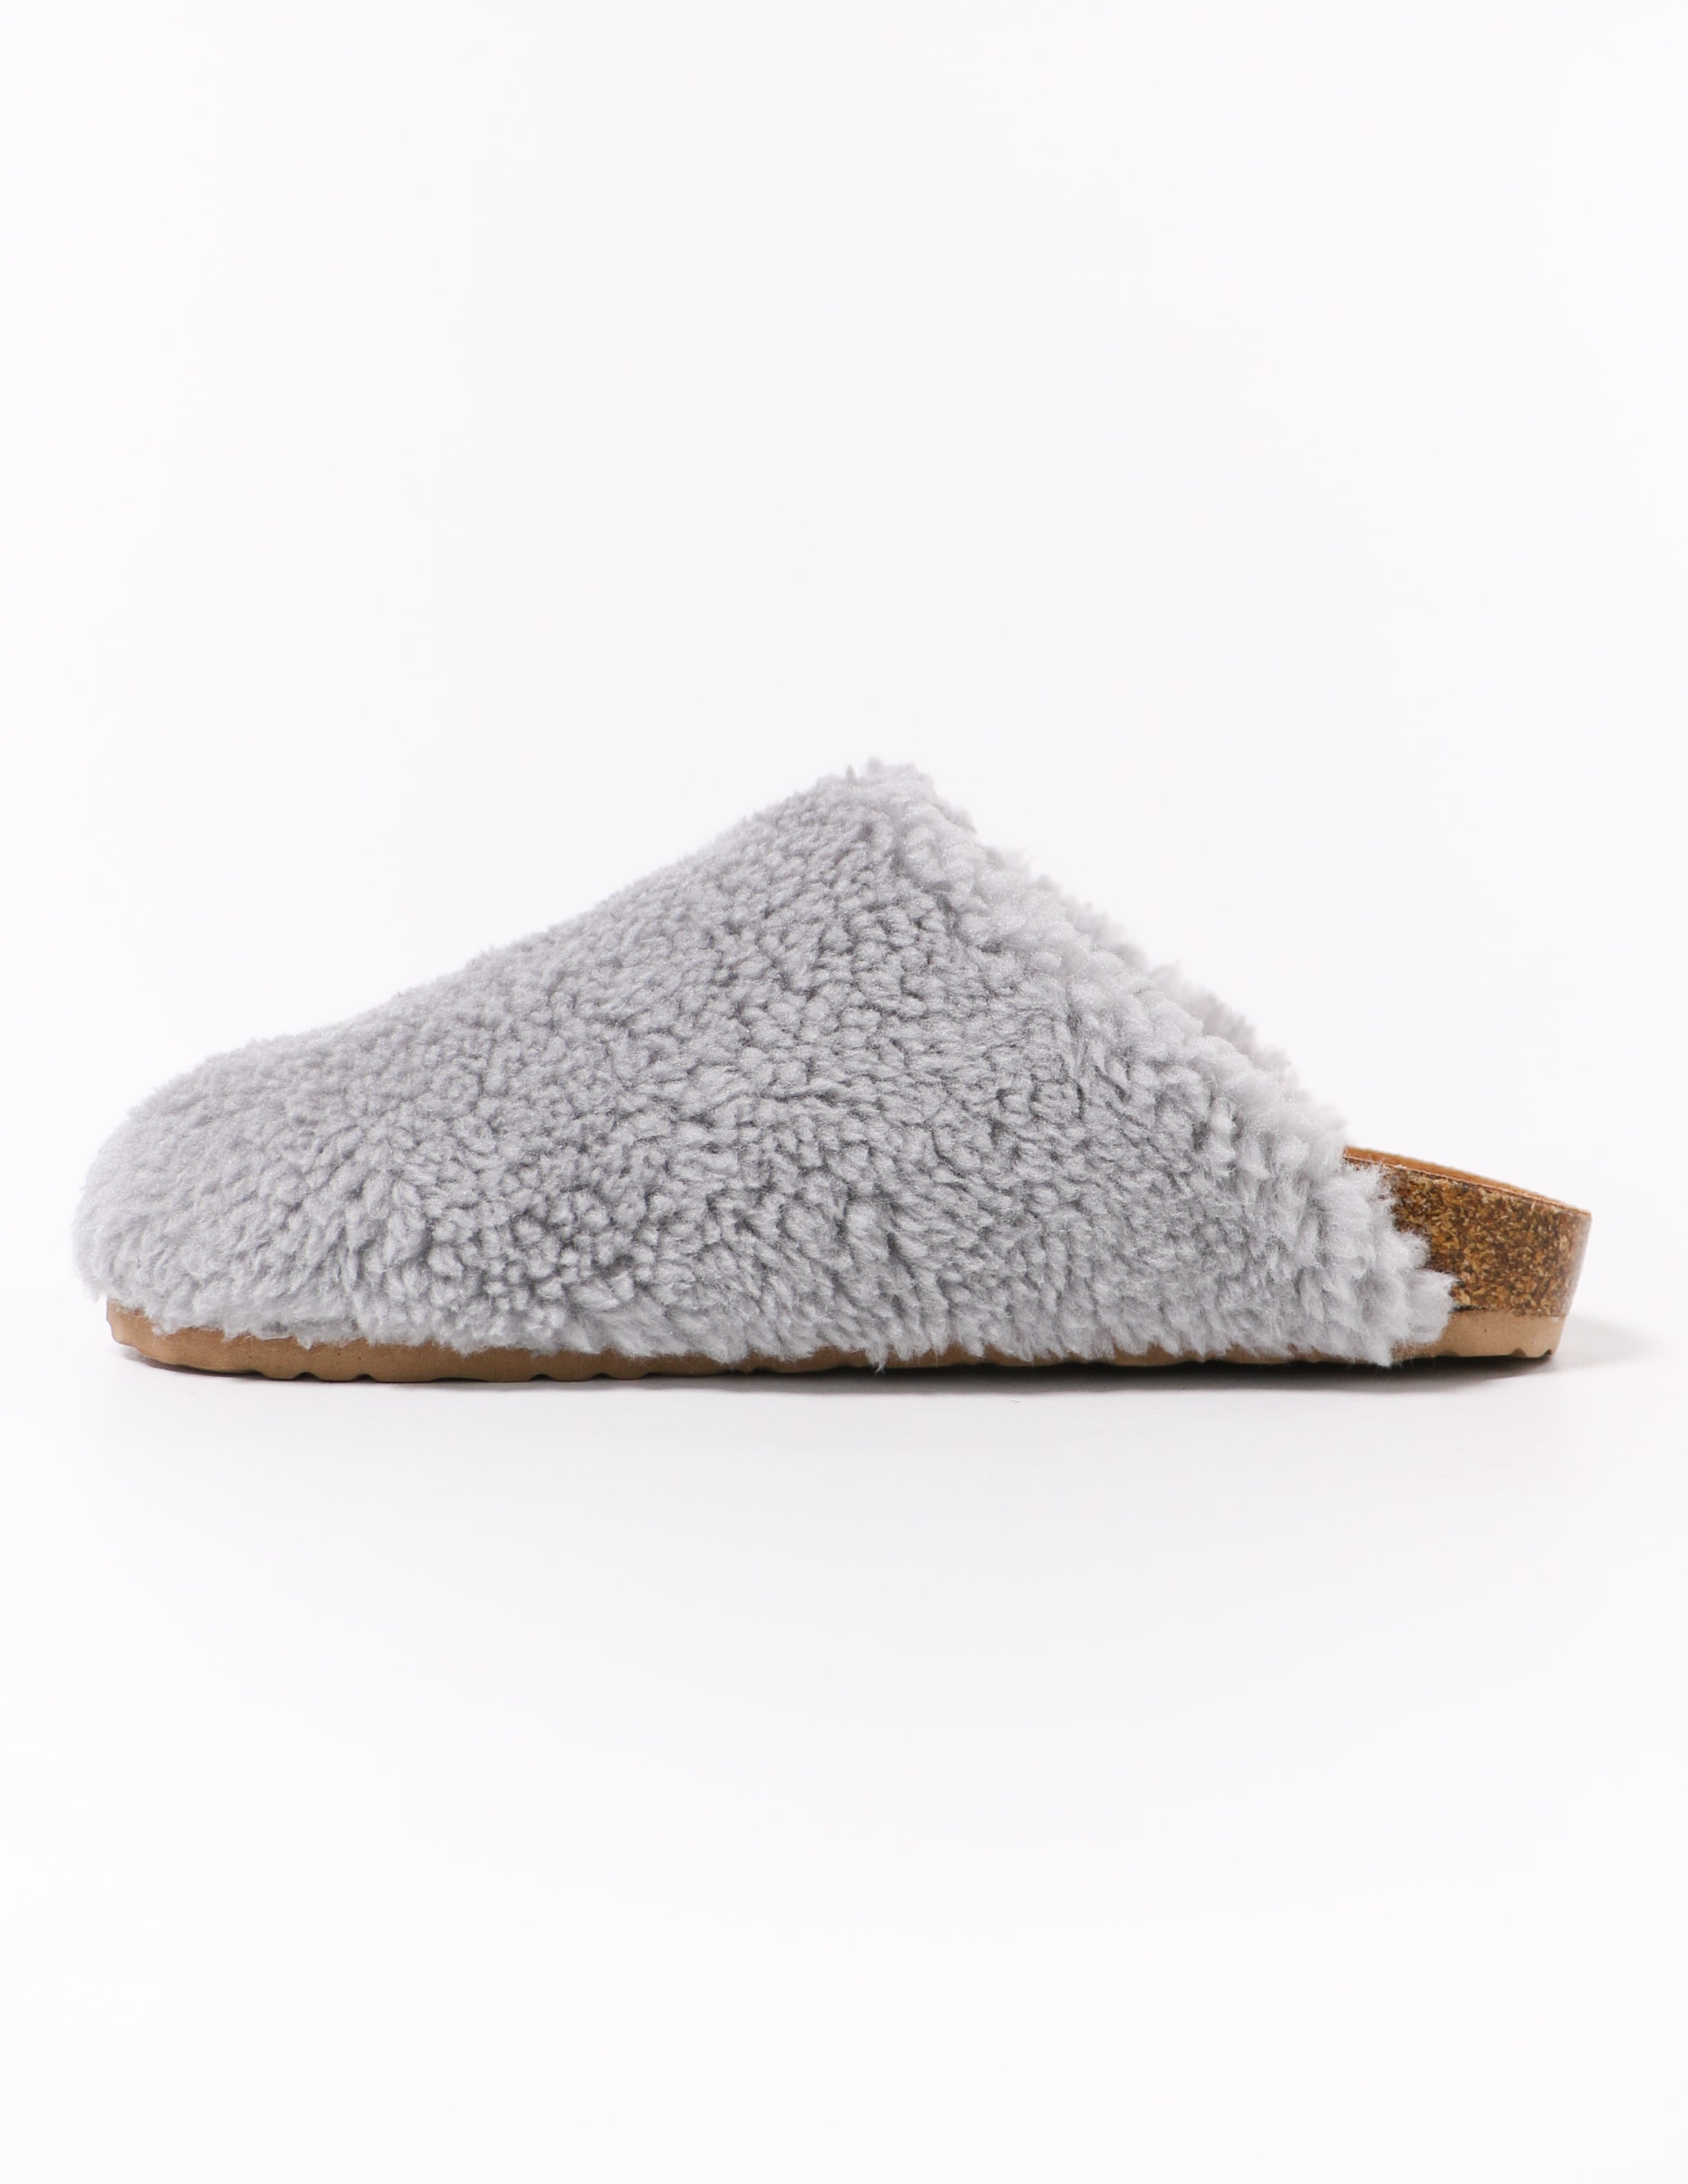 i'm teddy to go grey fuzzy slip on clog - elle bleu shoes